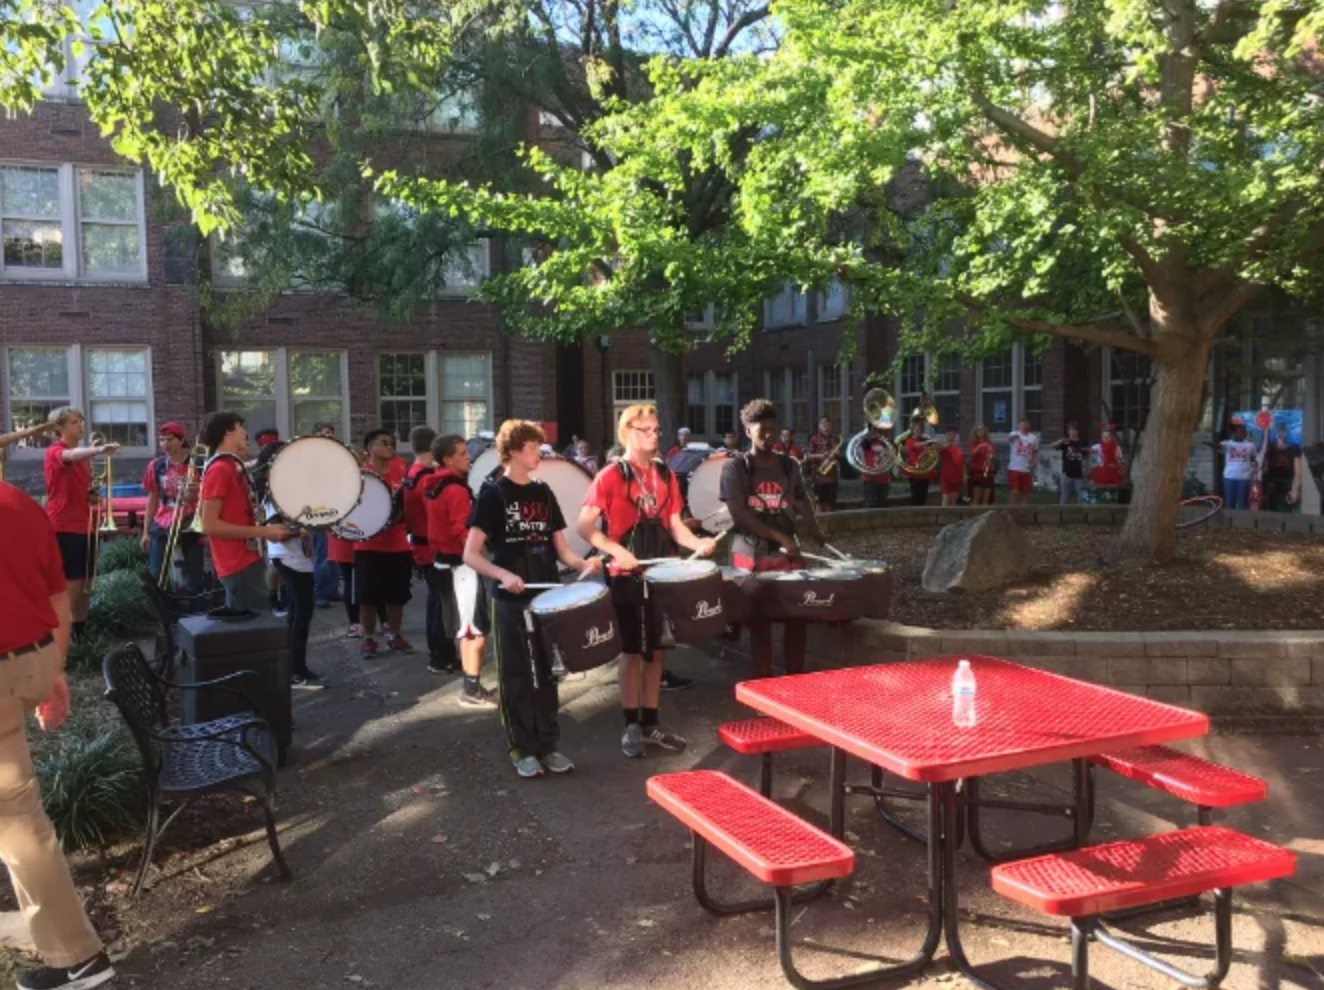 The marching band performs part of their competition show for a small group of alumni in the courtyard at the festival. Photo by Reece Gunther.